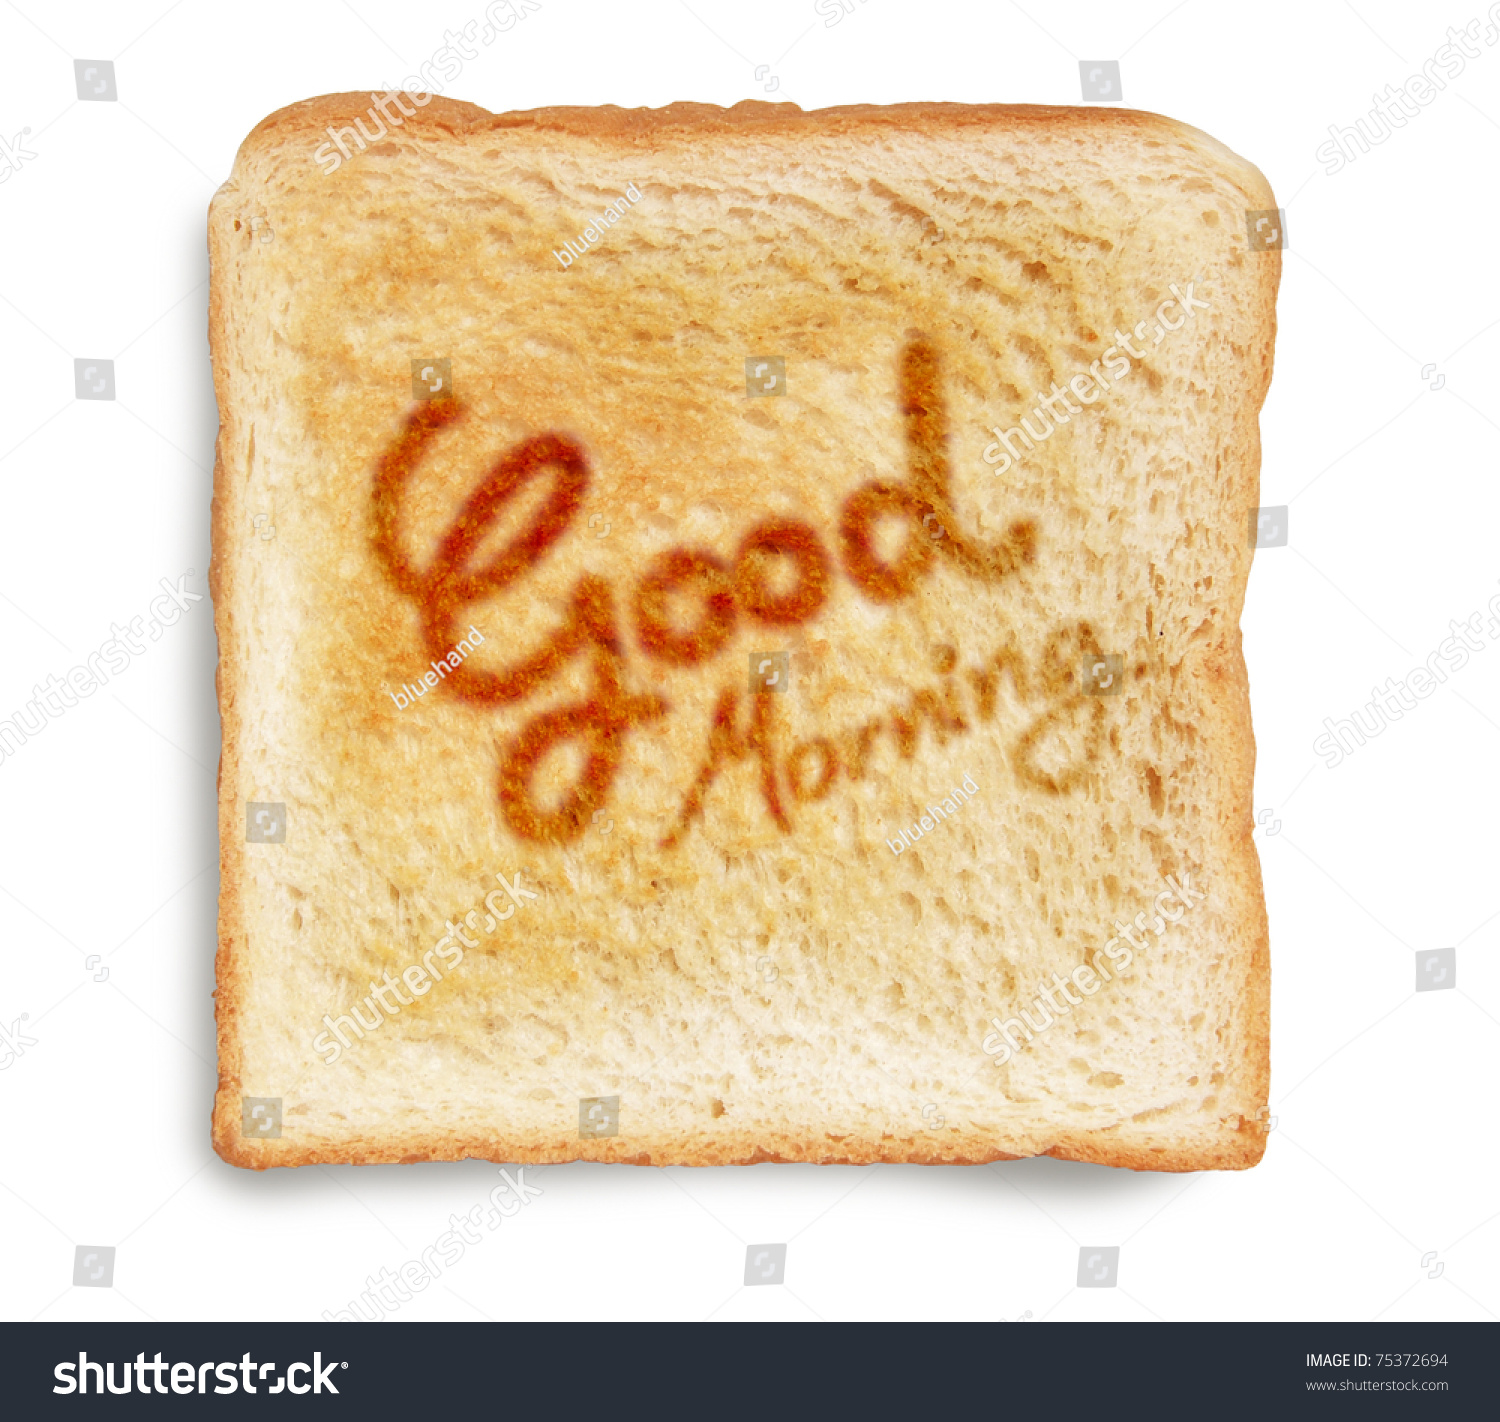 Good Morning Greeting On Toasted Bread Stock Photo